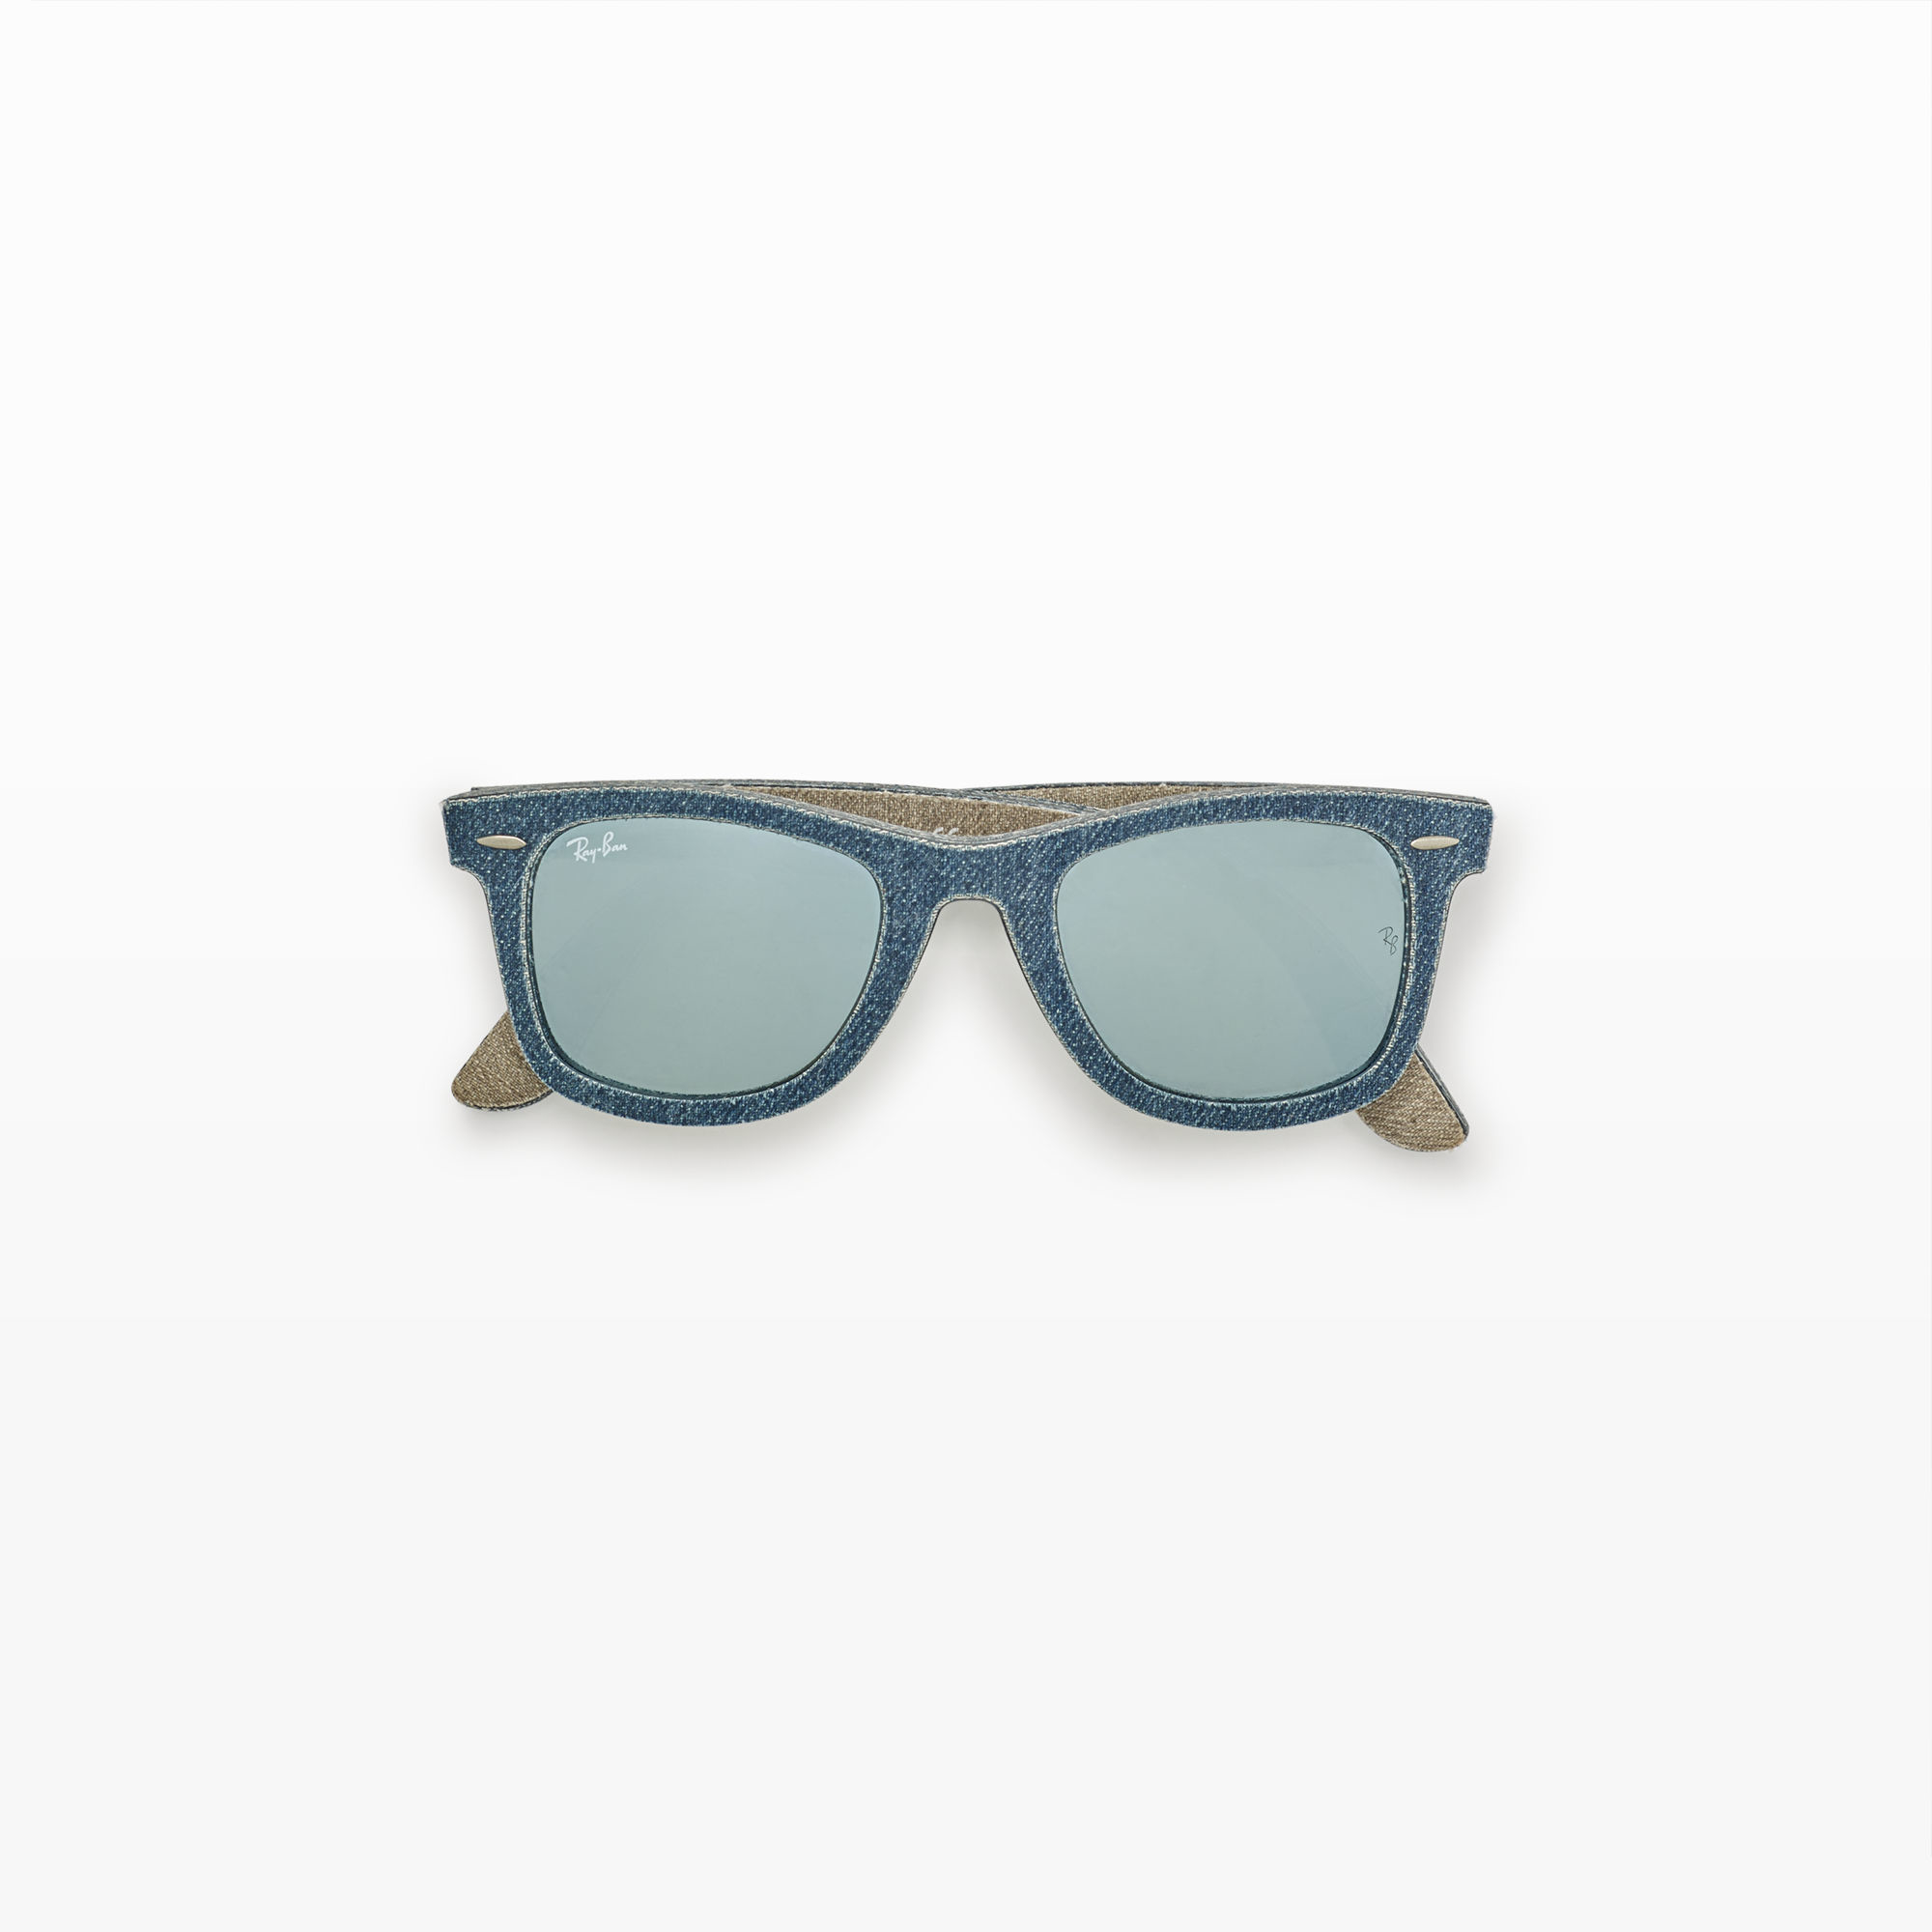 559067302 in addition 009 Ray Ban Sunglasses Round Shape also Ray Ban Rayban Clubmaster Sunglasses Tortoiseshell further 407435097514778954 in addition Club Monaco Ray Ban Denim Wayfarer. on ray ban leather frames